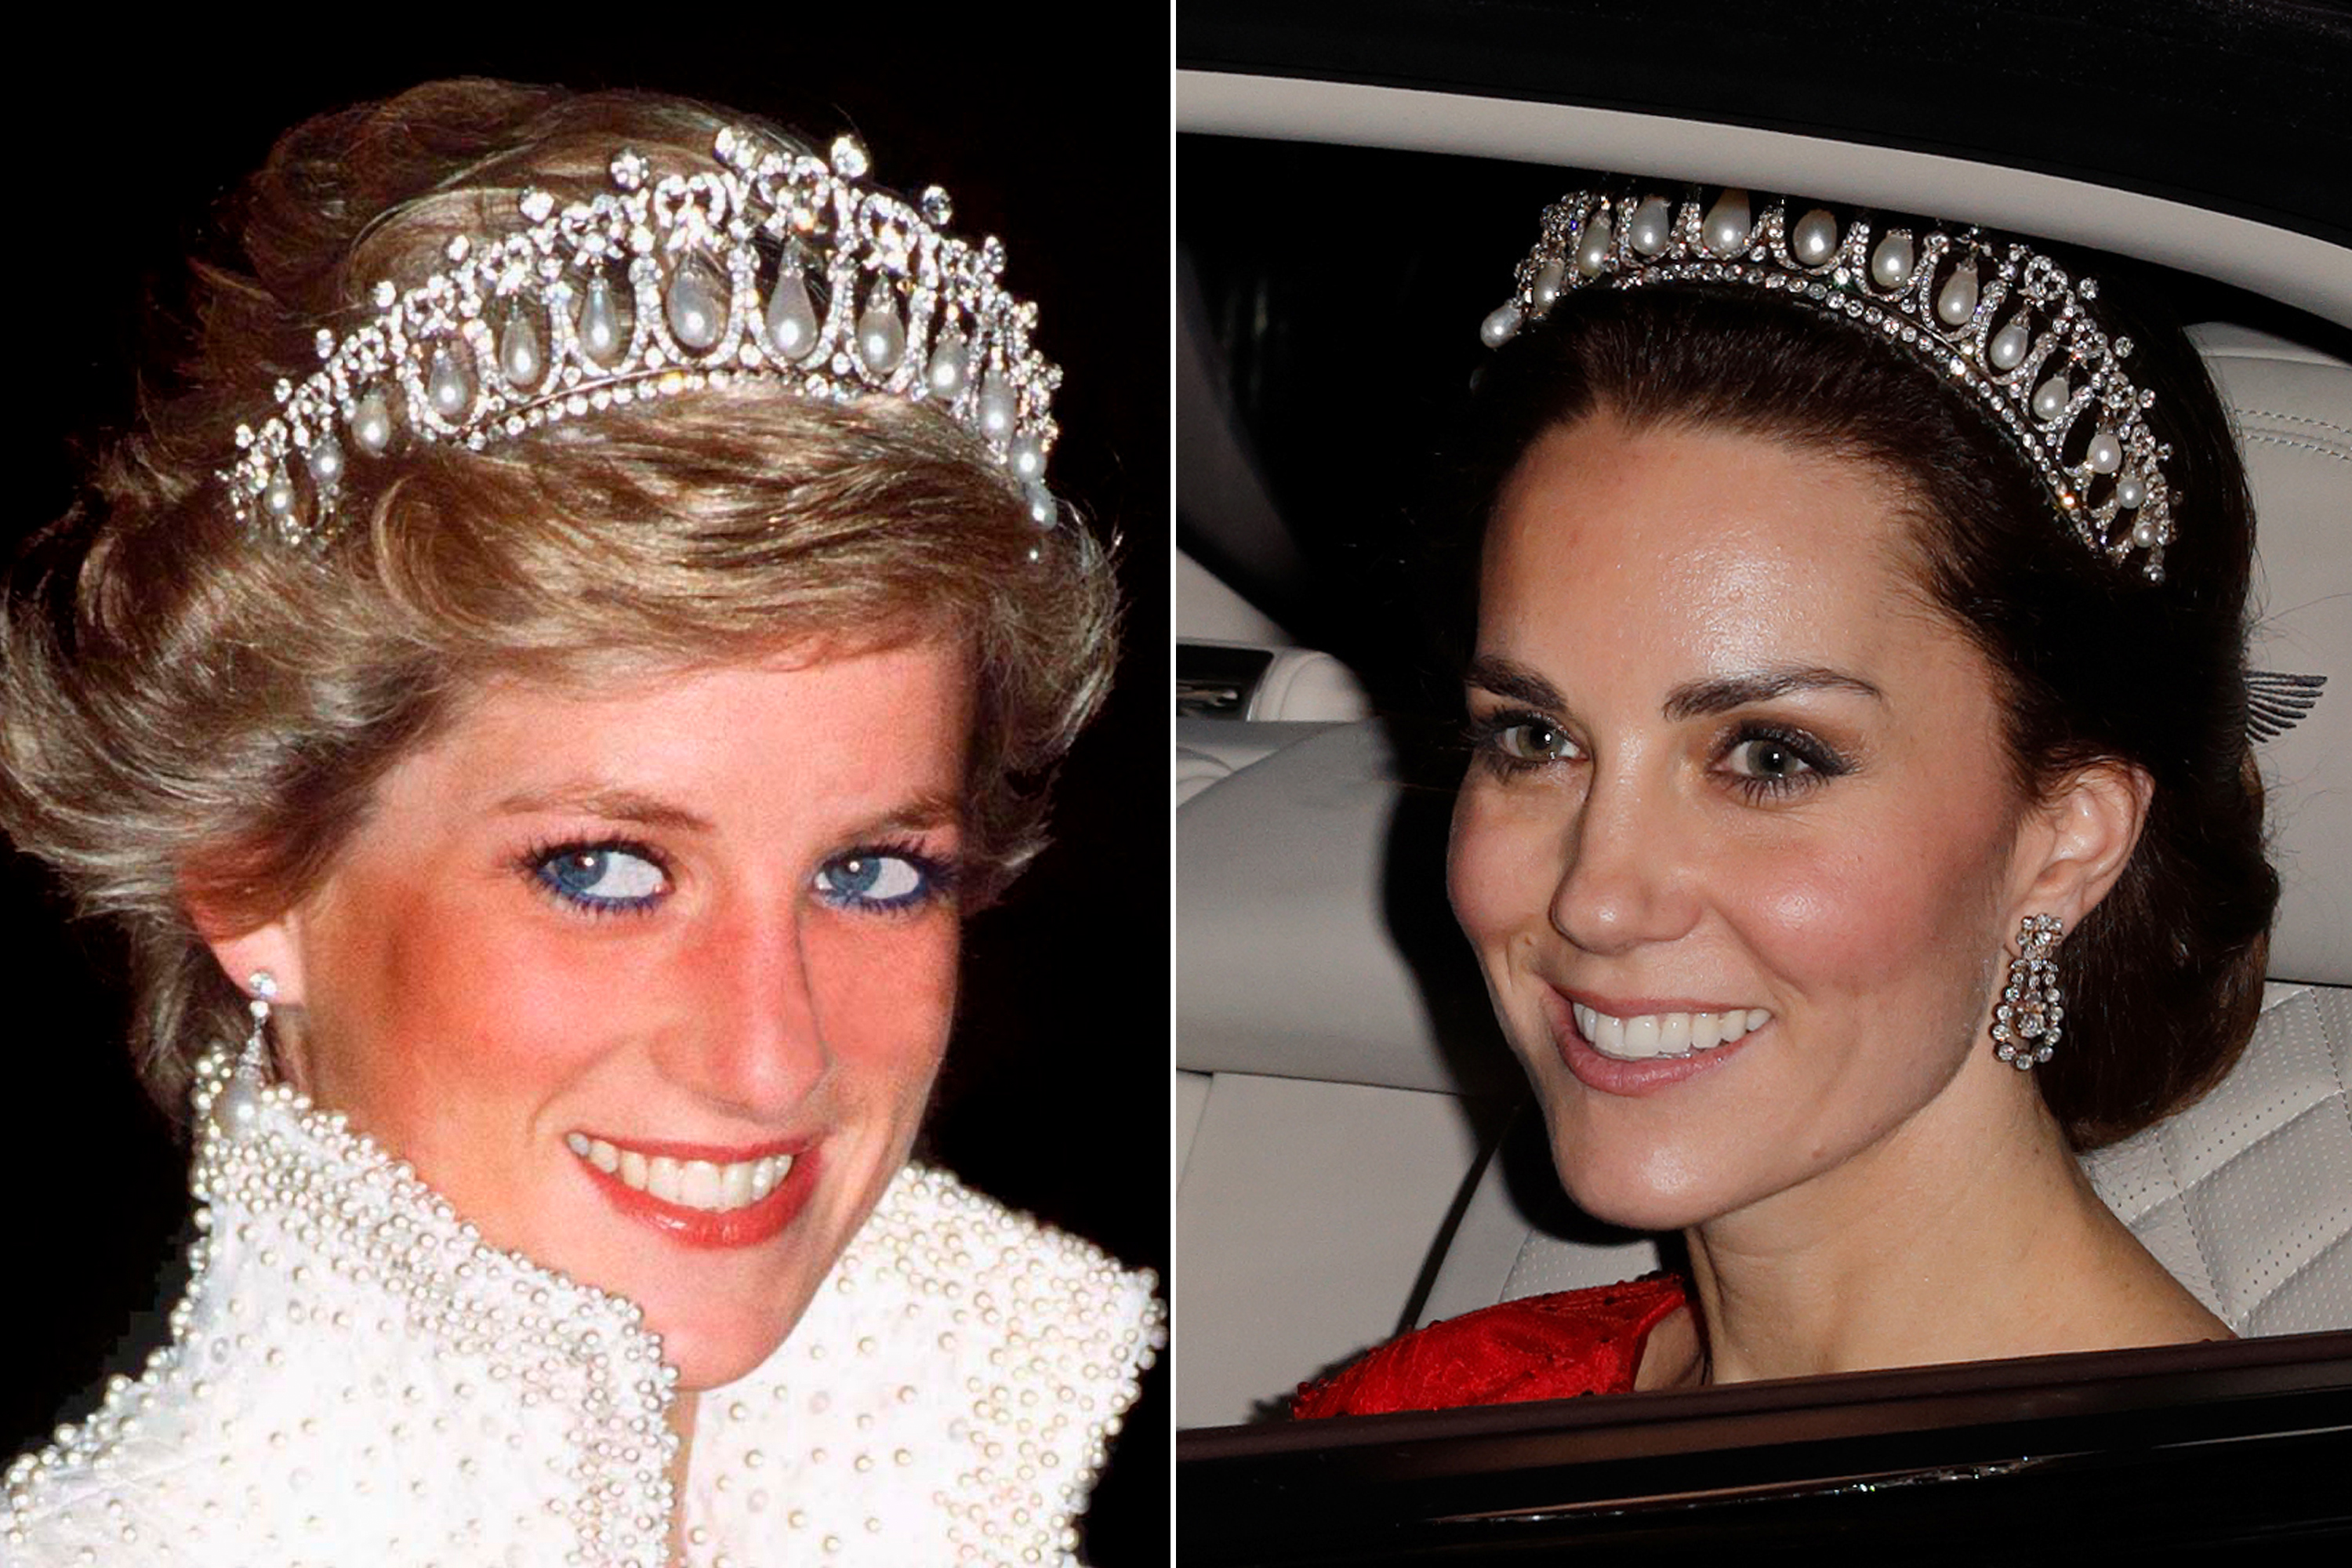 One of Diana's favorite pieces of jewelry from the royal family's collection was the Cambridge Lover's Knot tiara, which she wore often. Kate was recently photographed wearing it during a state dinner at Buckingham Palace.